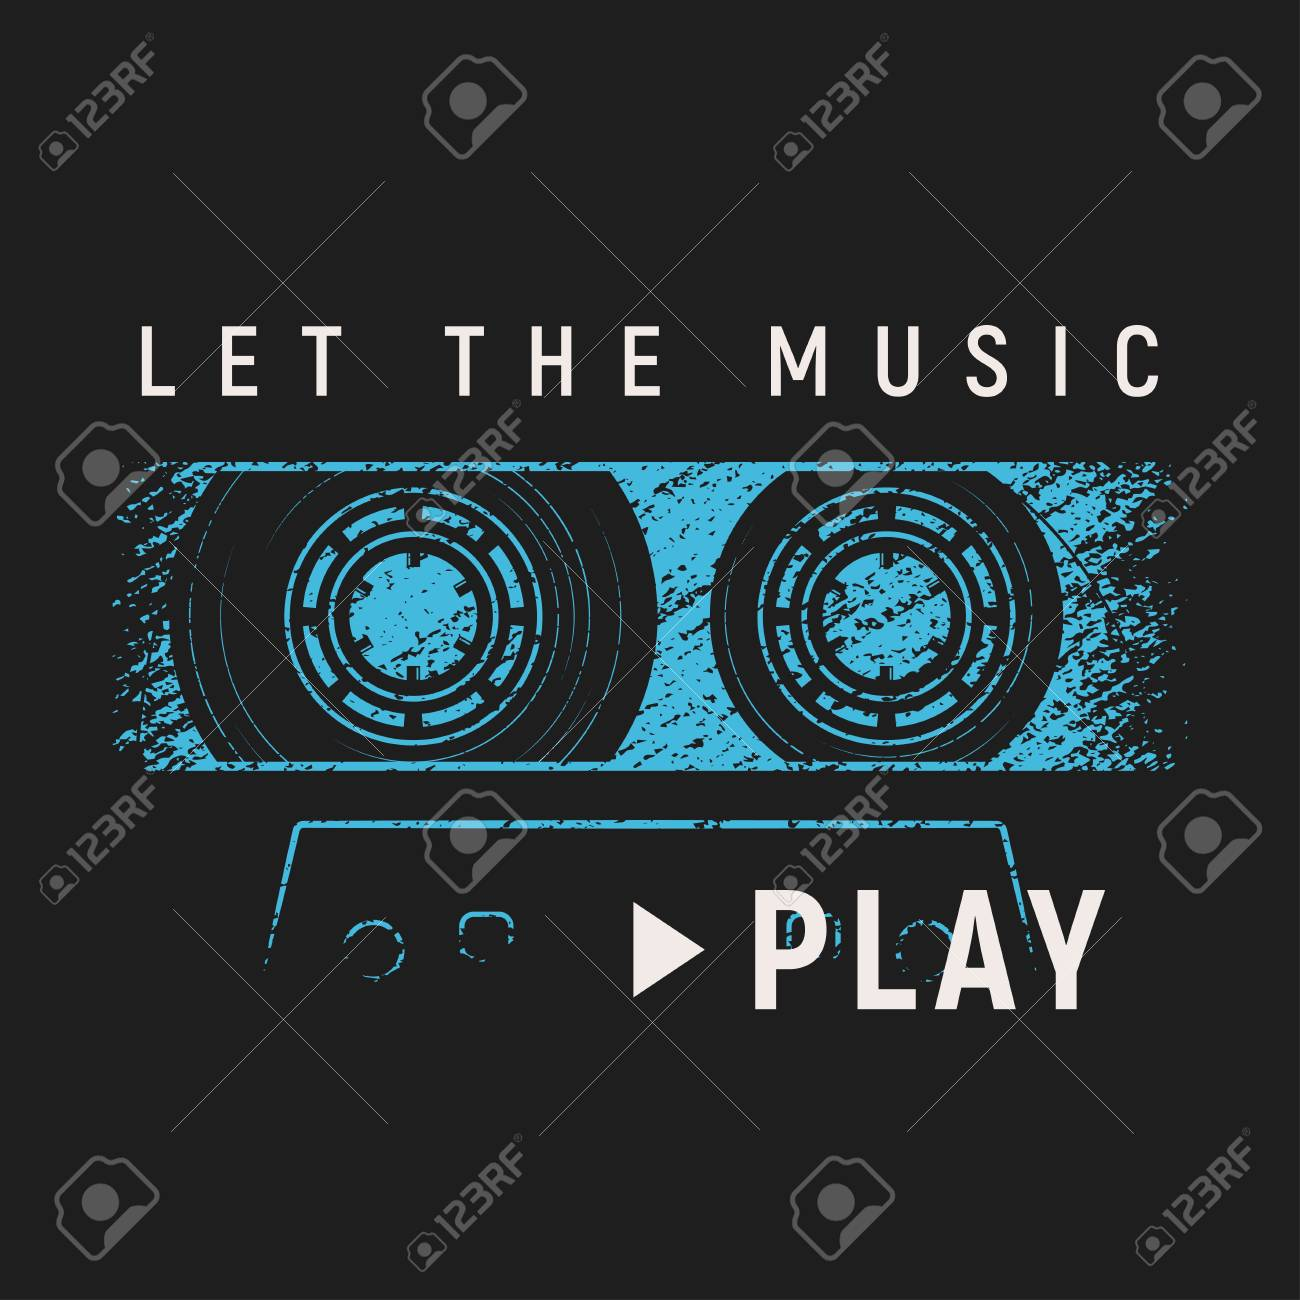 7aeca367 Let the music play t-shirt and apparel design with grunge effect Stock  Vector -